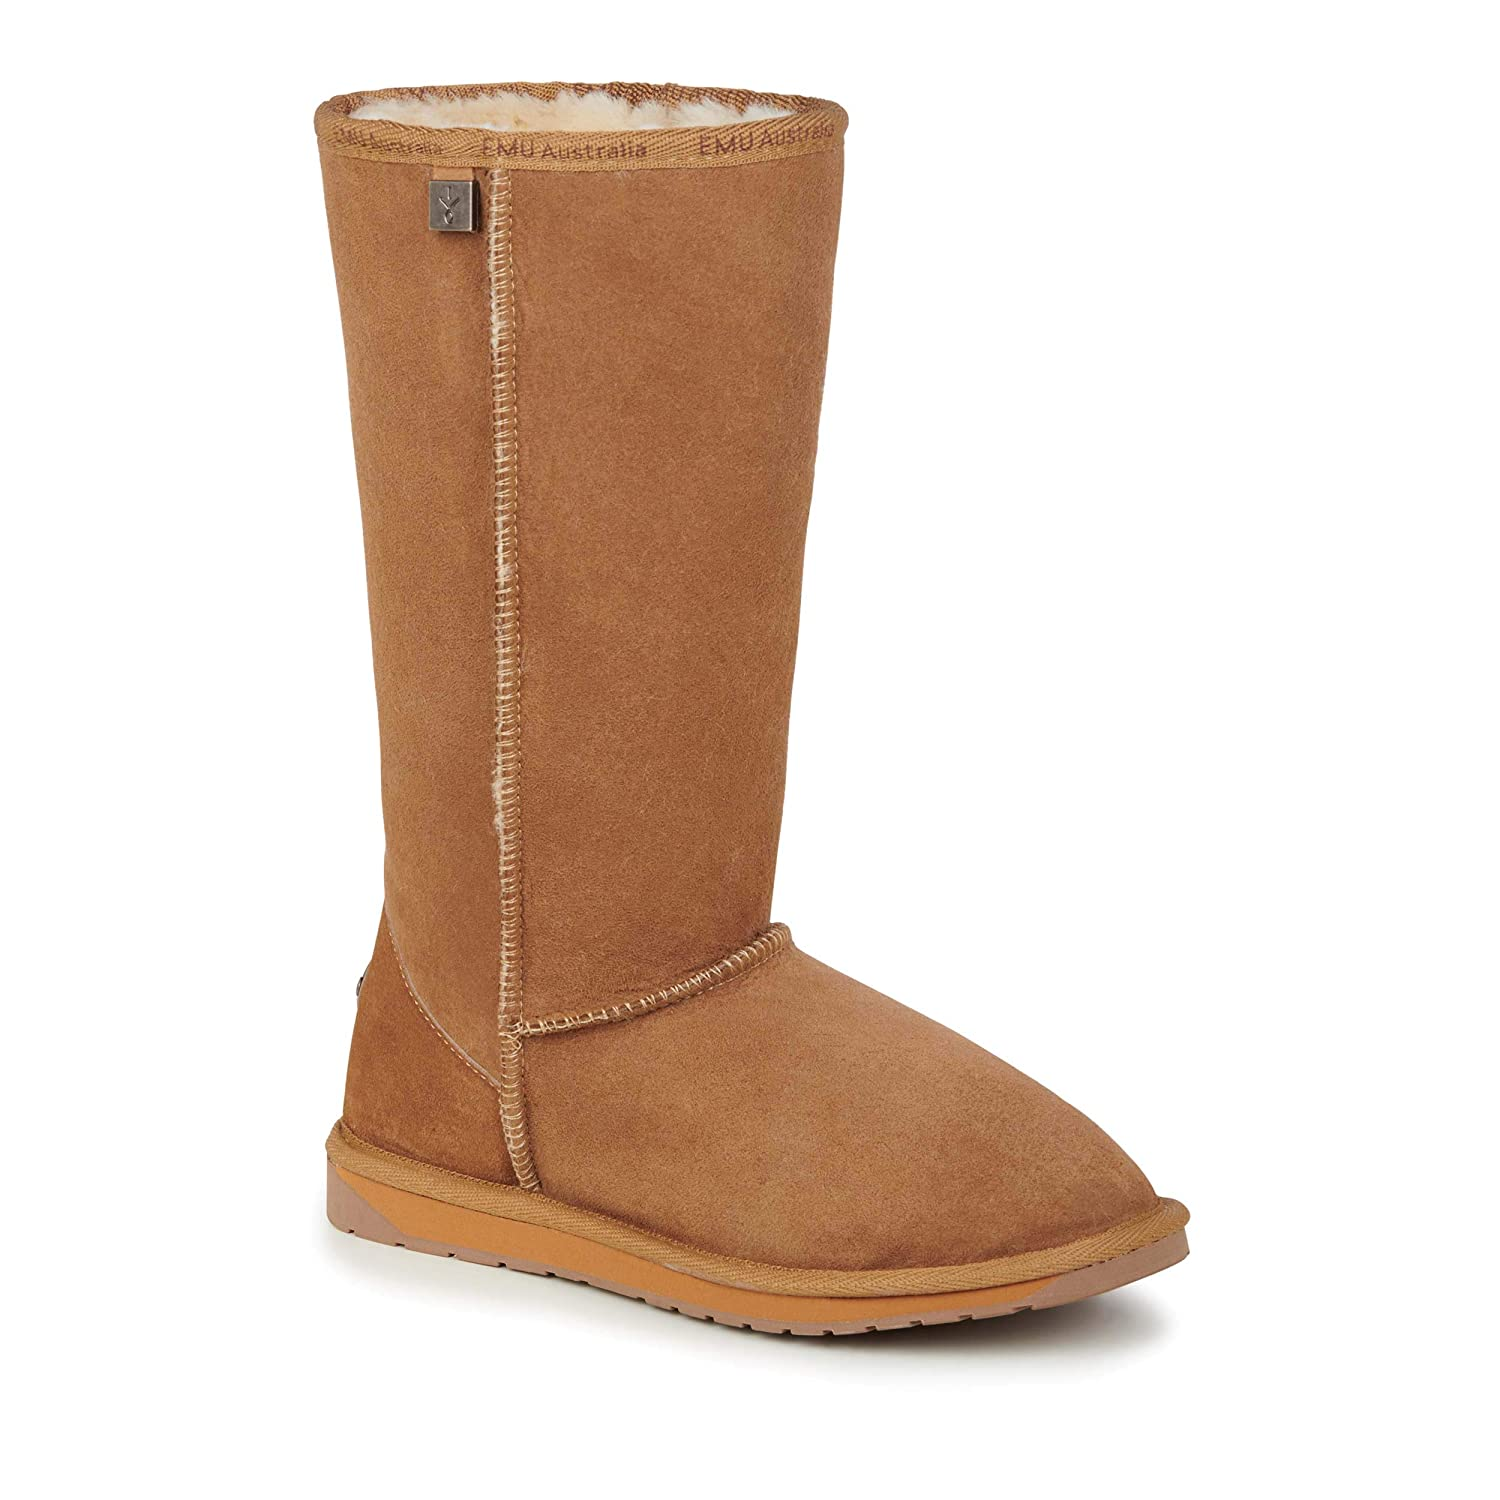 78496881bfd Amazon.com | EMU Australia Women's Stinger Hi | Mid-Calf